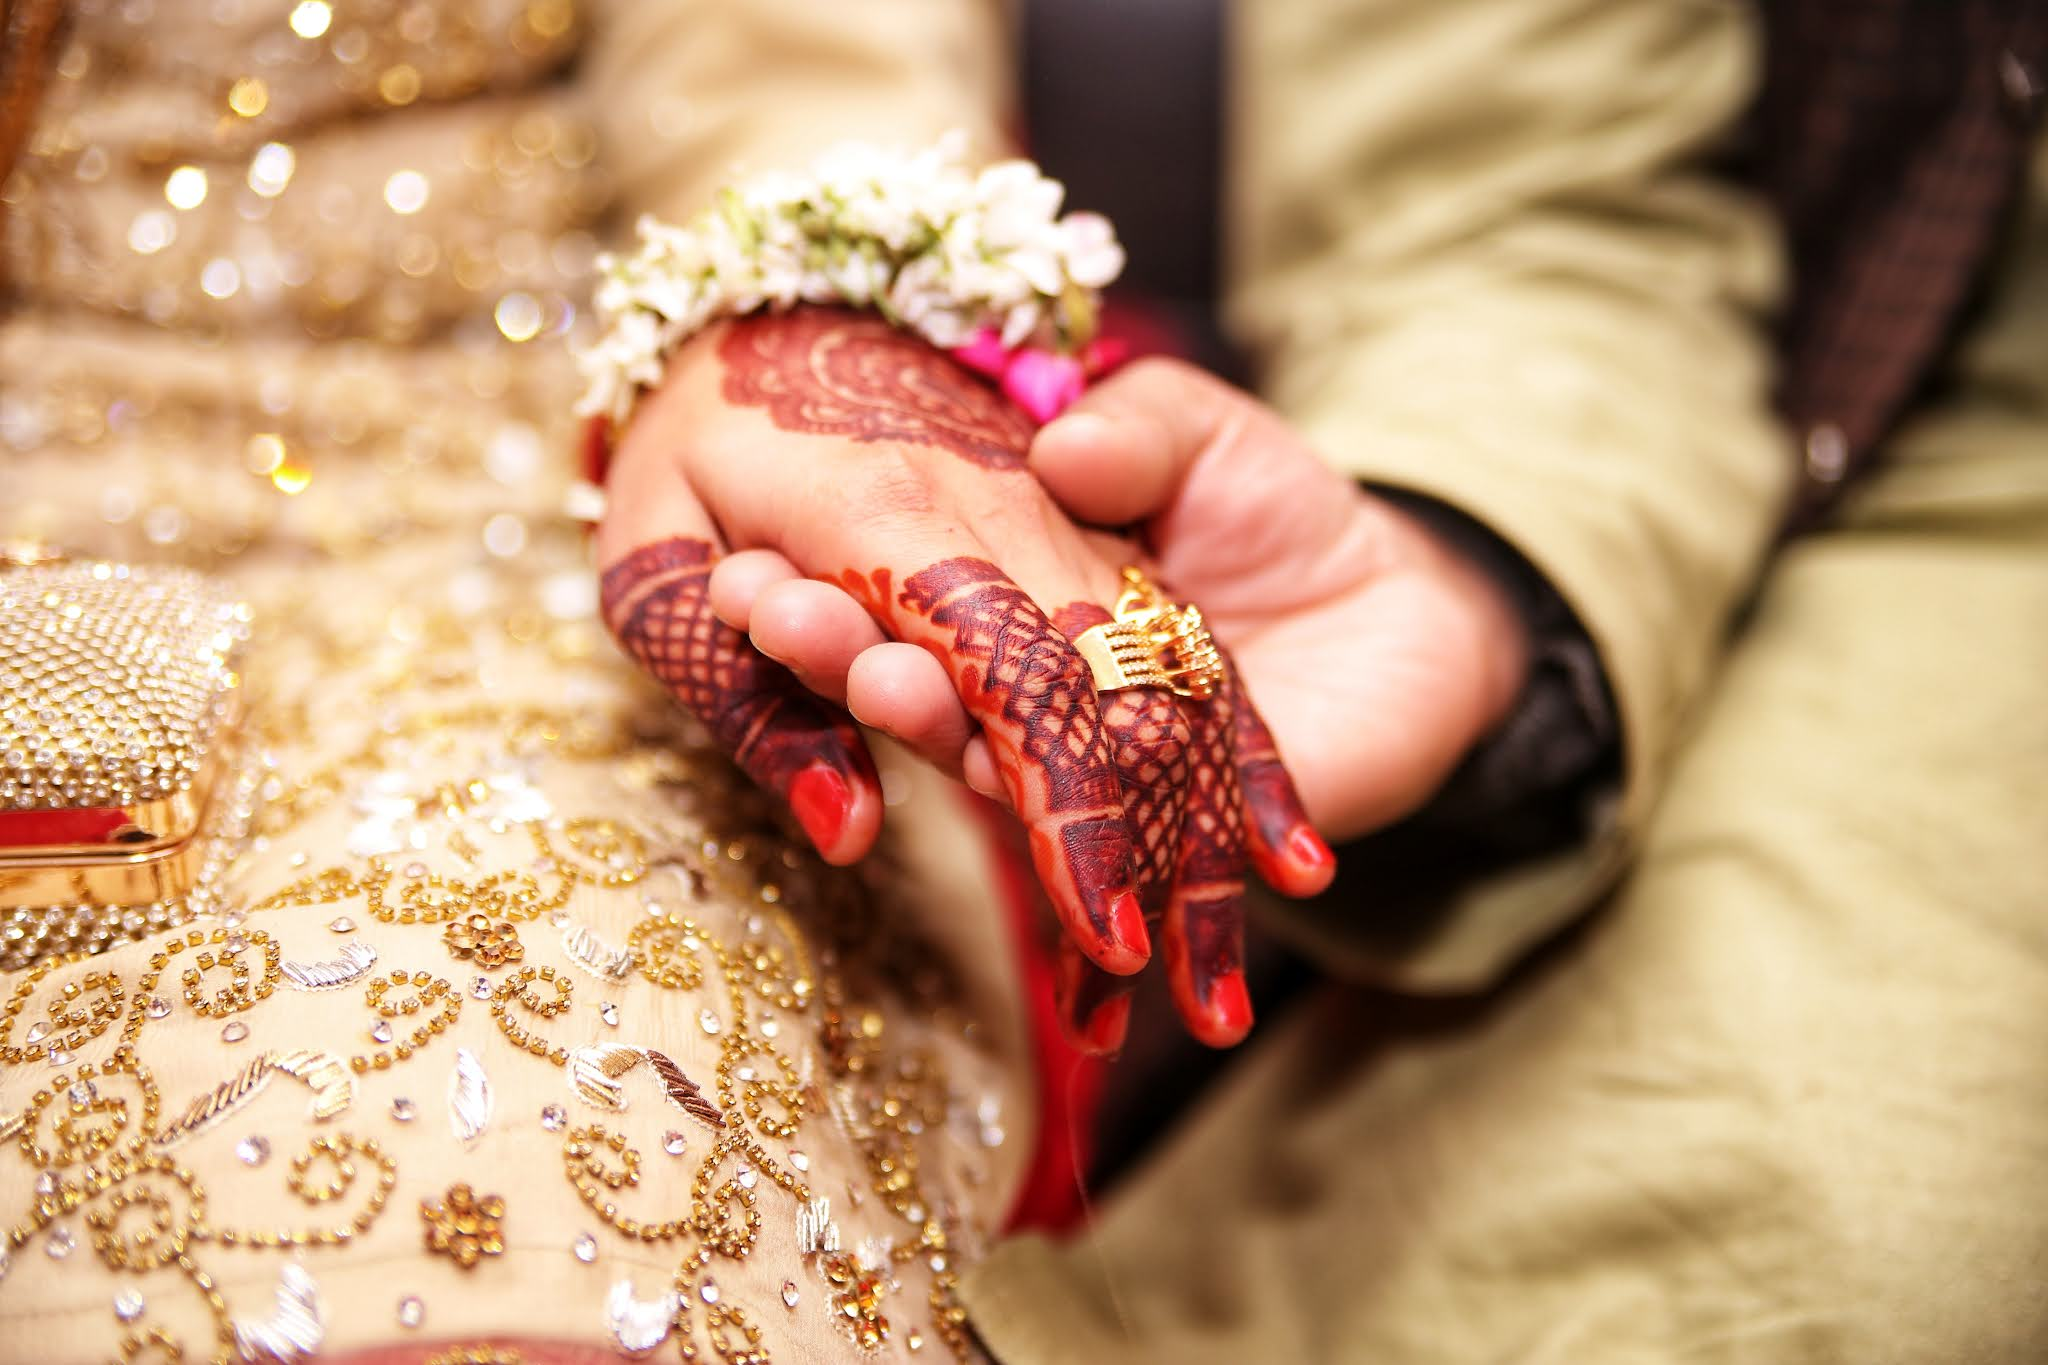 WHY DO PEOPLE GET MARRIED?